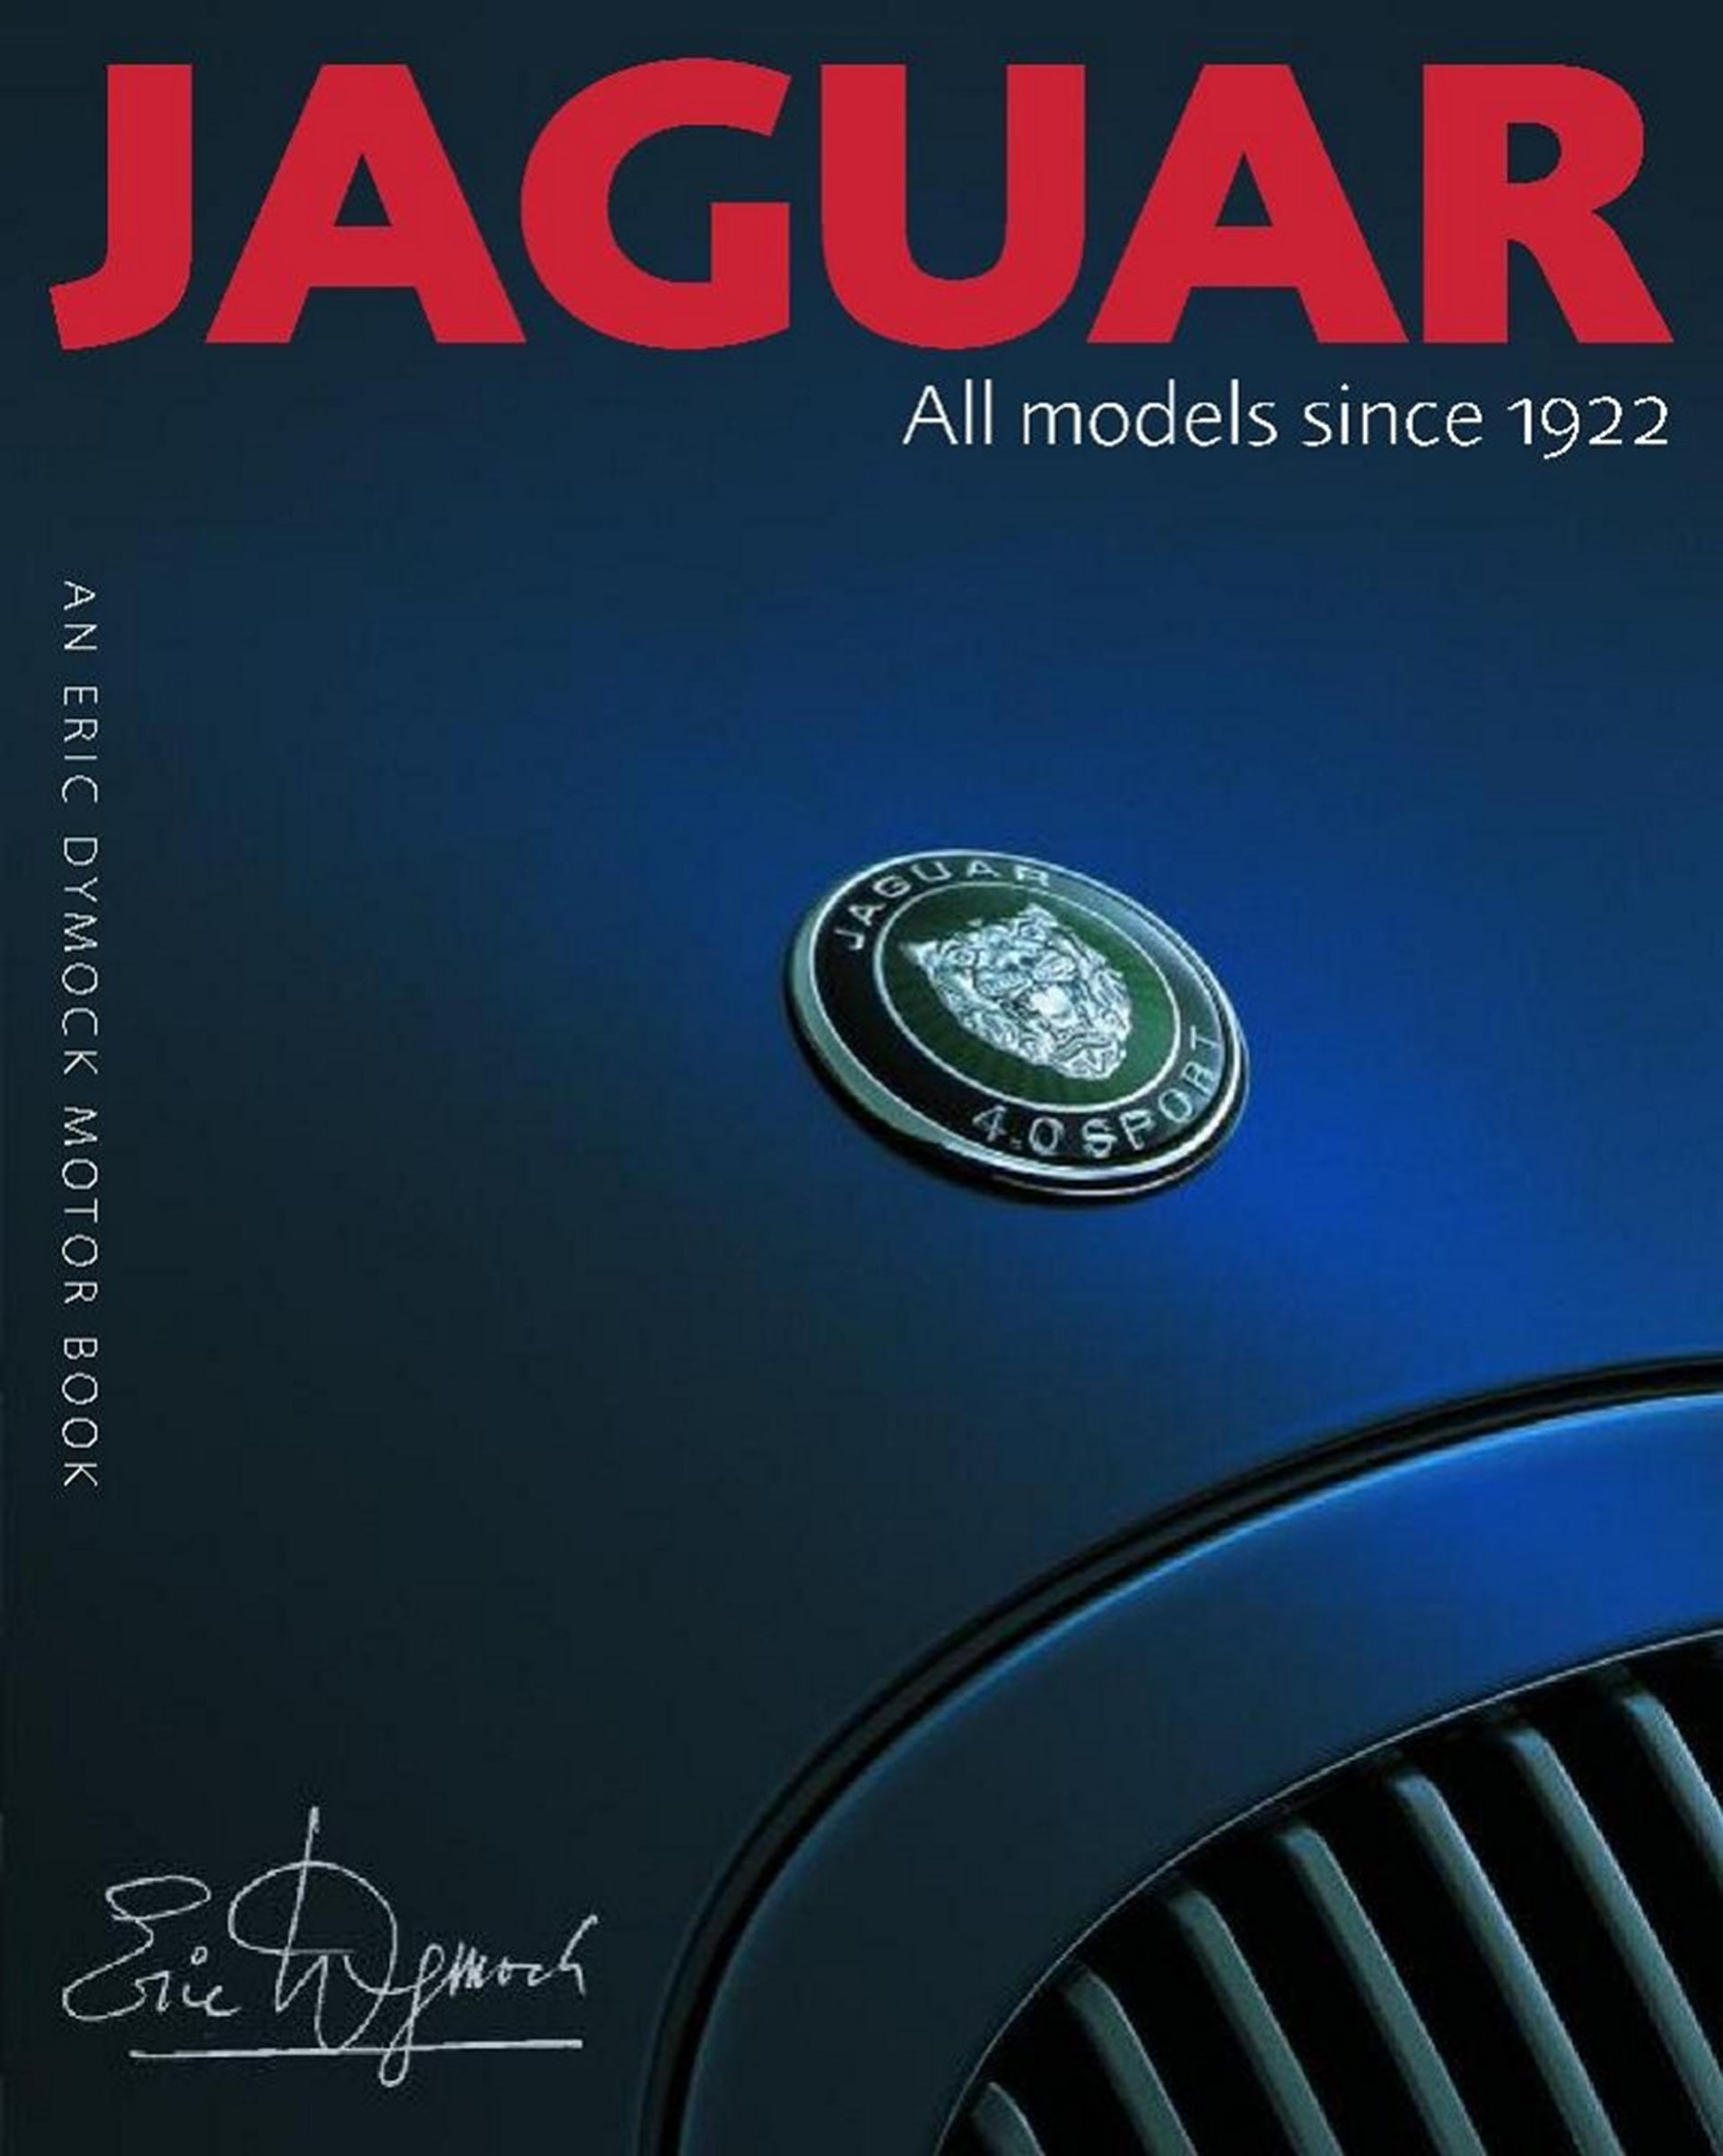 jaguar-book